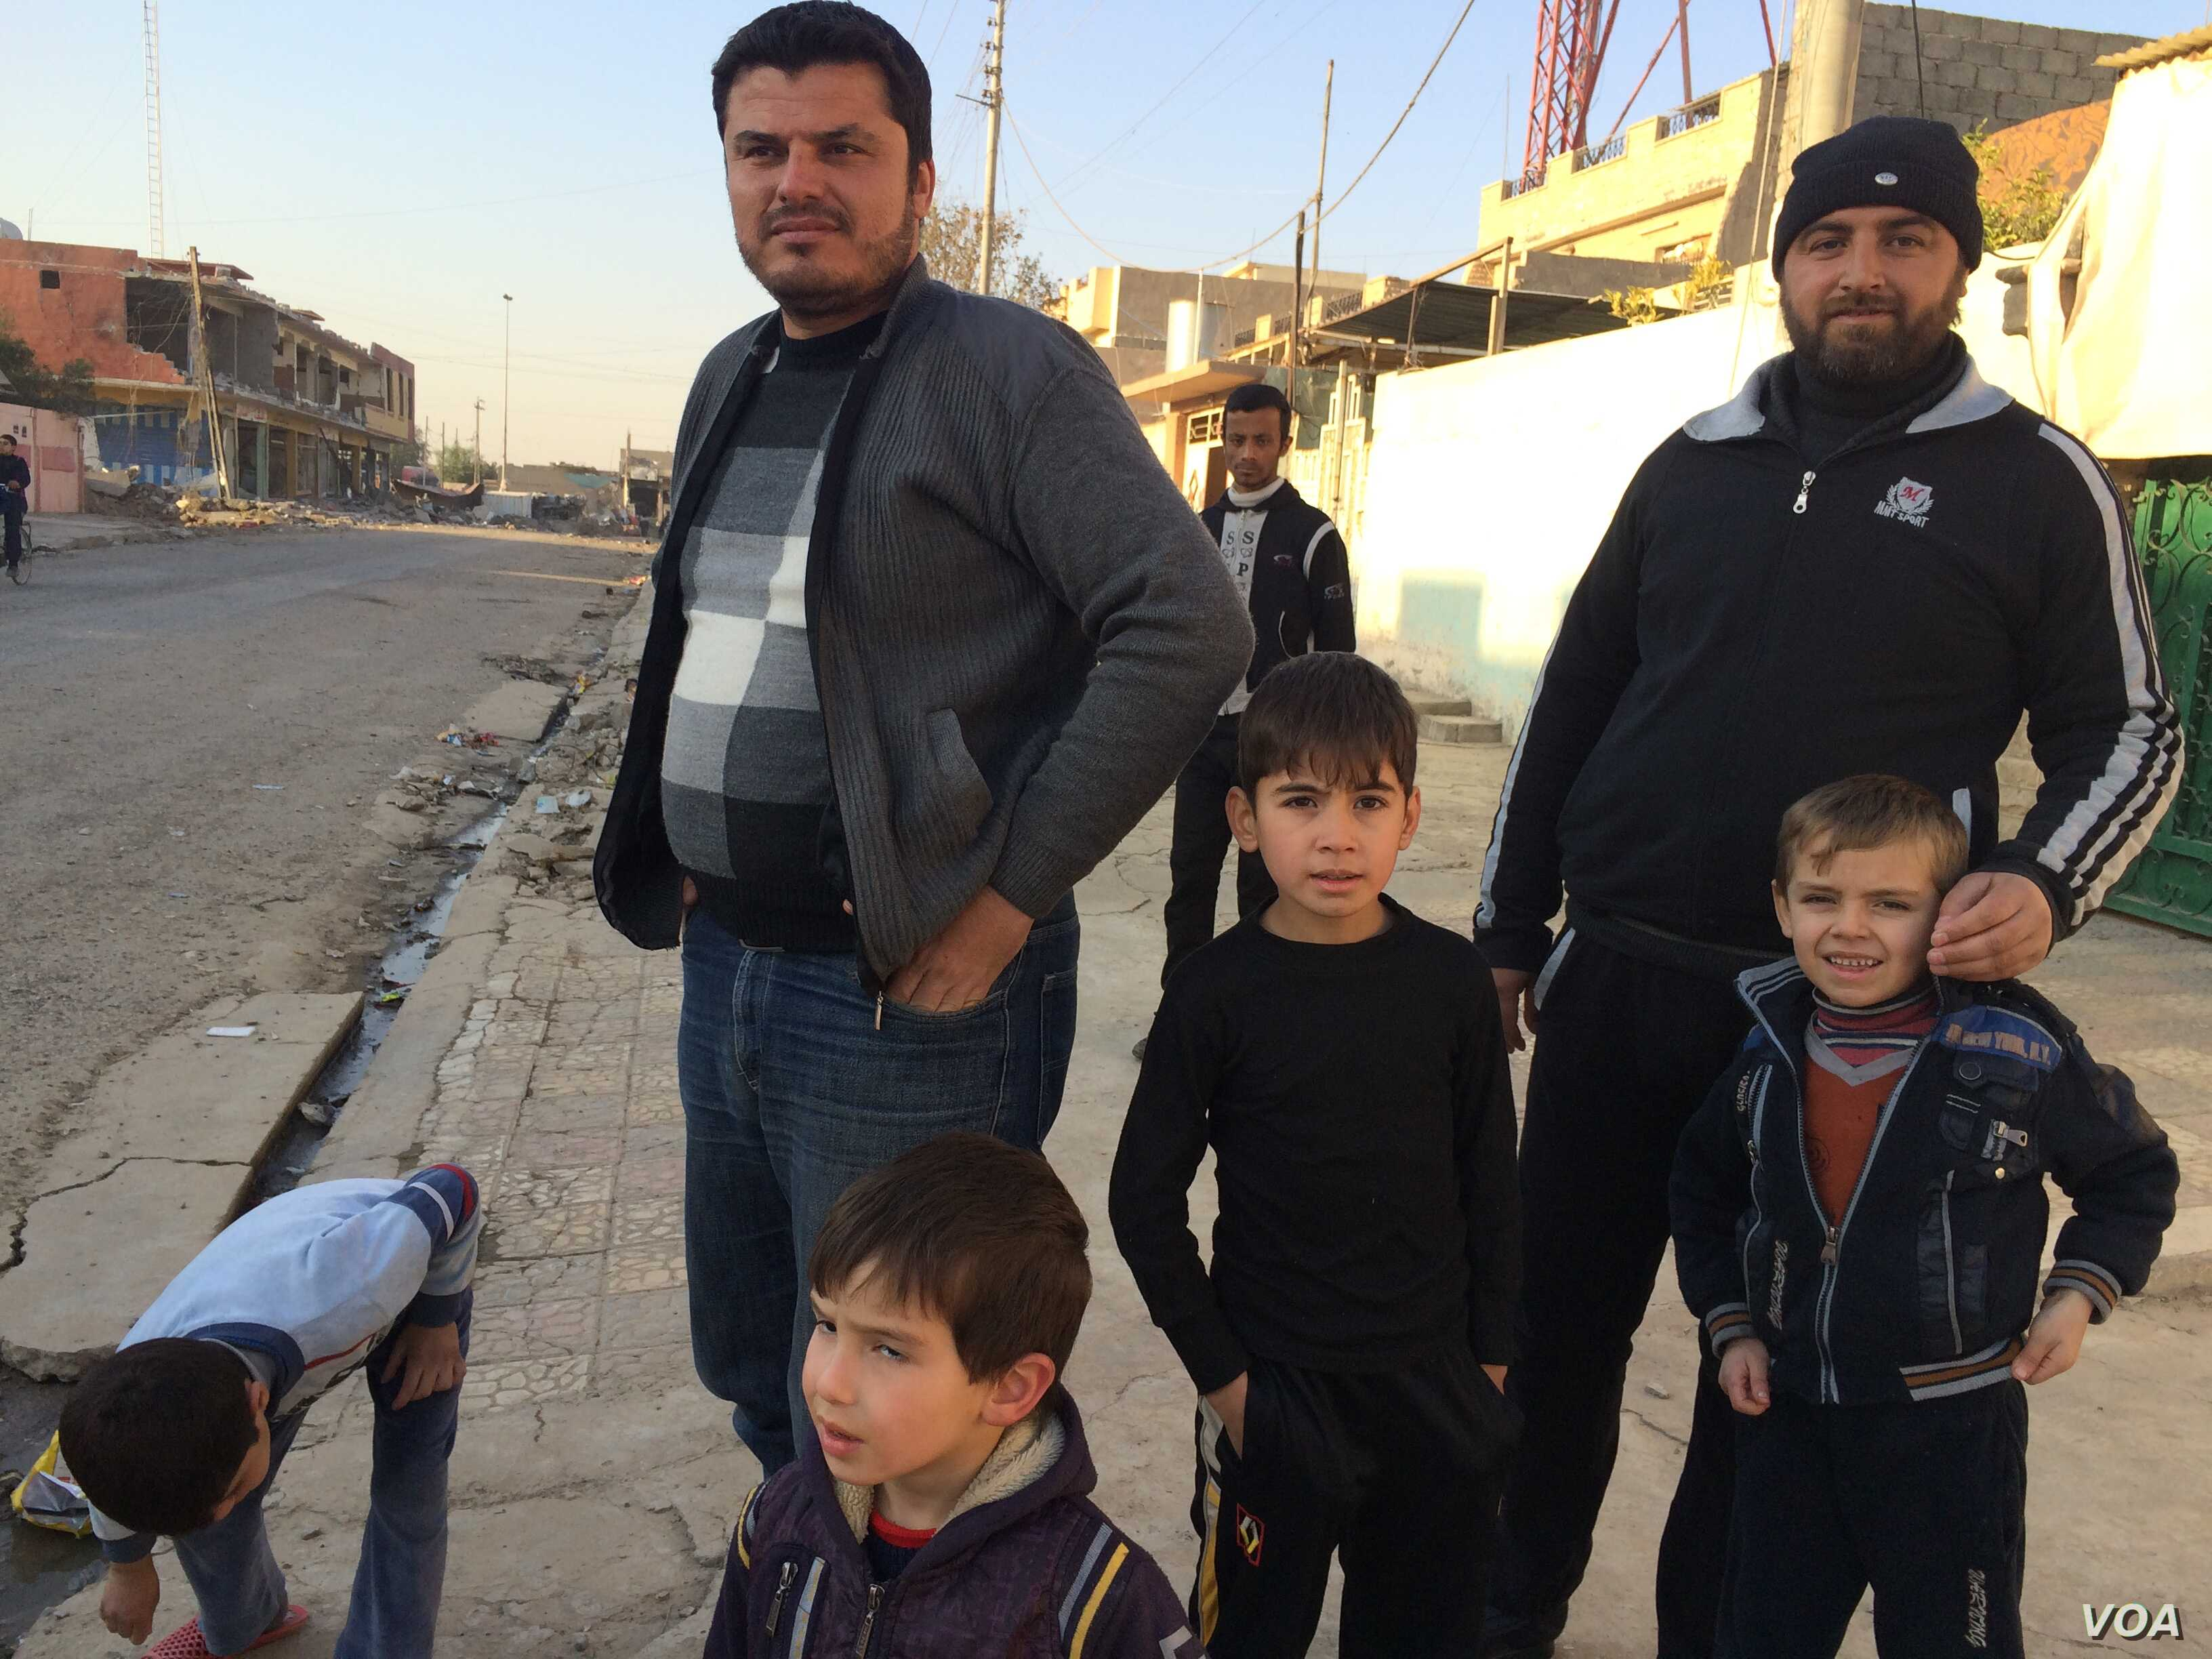 Arabic language teacher Nathir Bashir and his family stand outside their Mosul home as mortars and gunfire can be heard in the next neighborhood in Mosul, Iraq, Nov. 27, 2016. (H. Murdock/VOA)